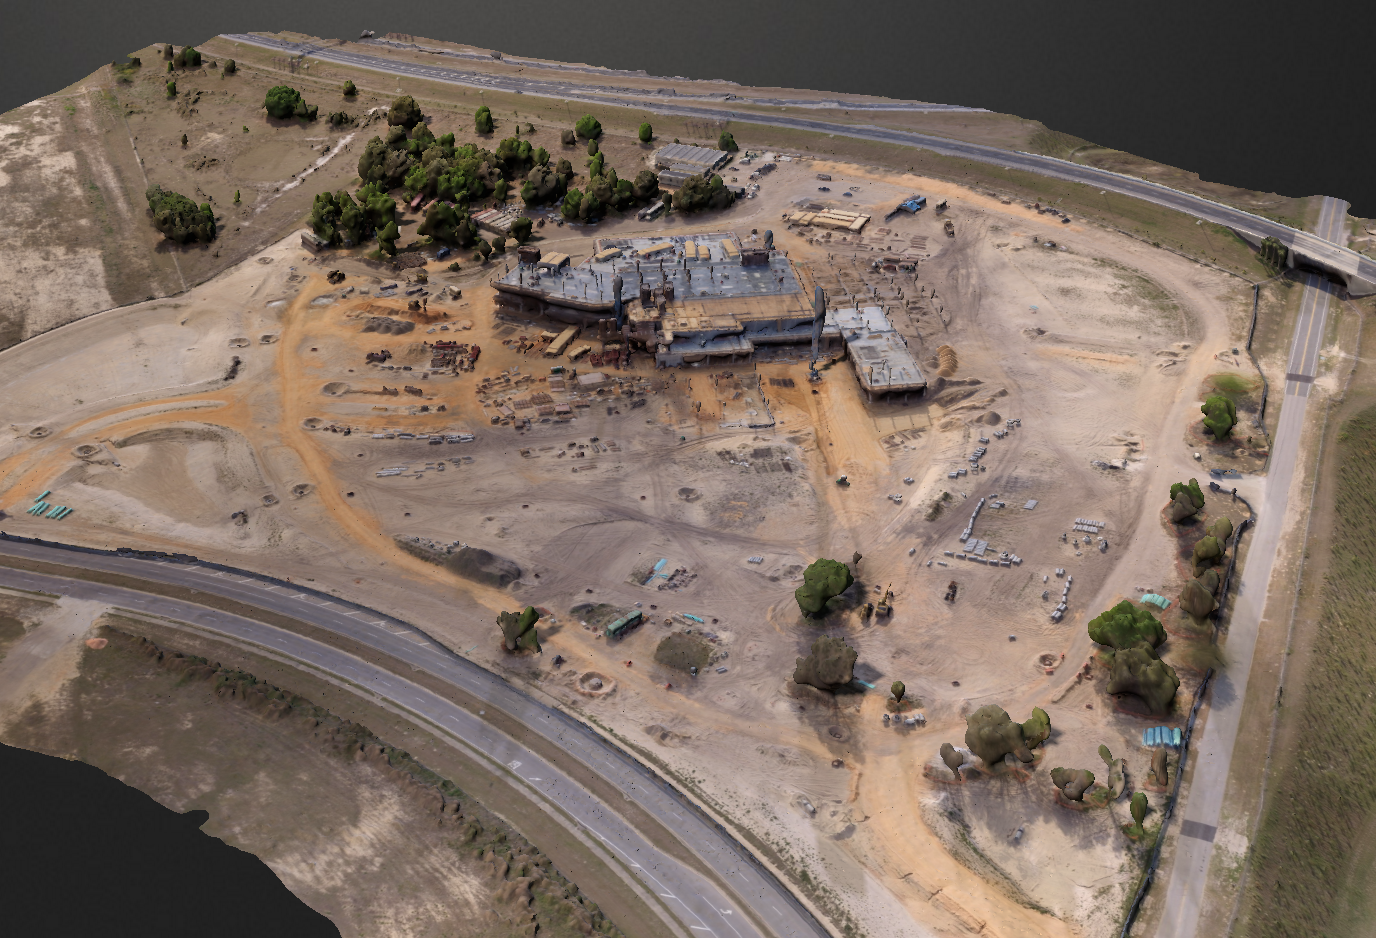 Drone Helps Verify Earthwork At Hospital Construction Site